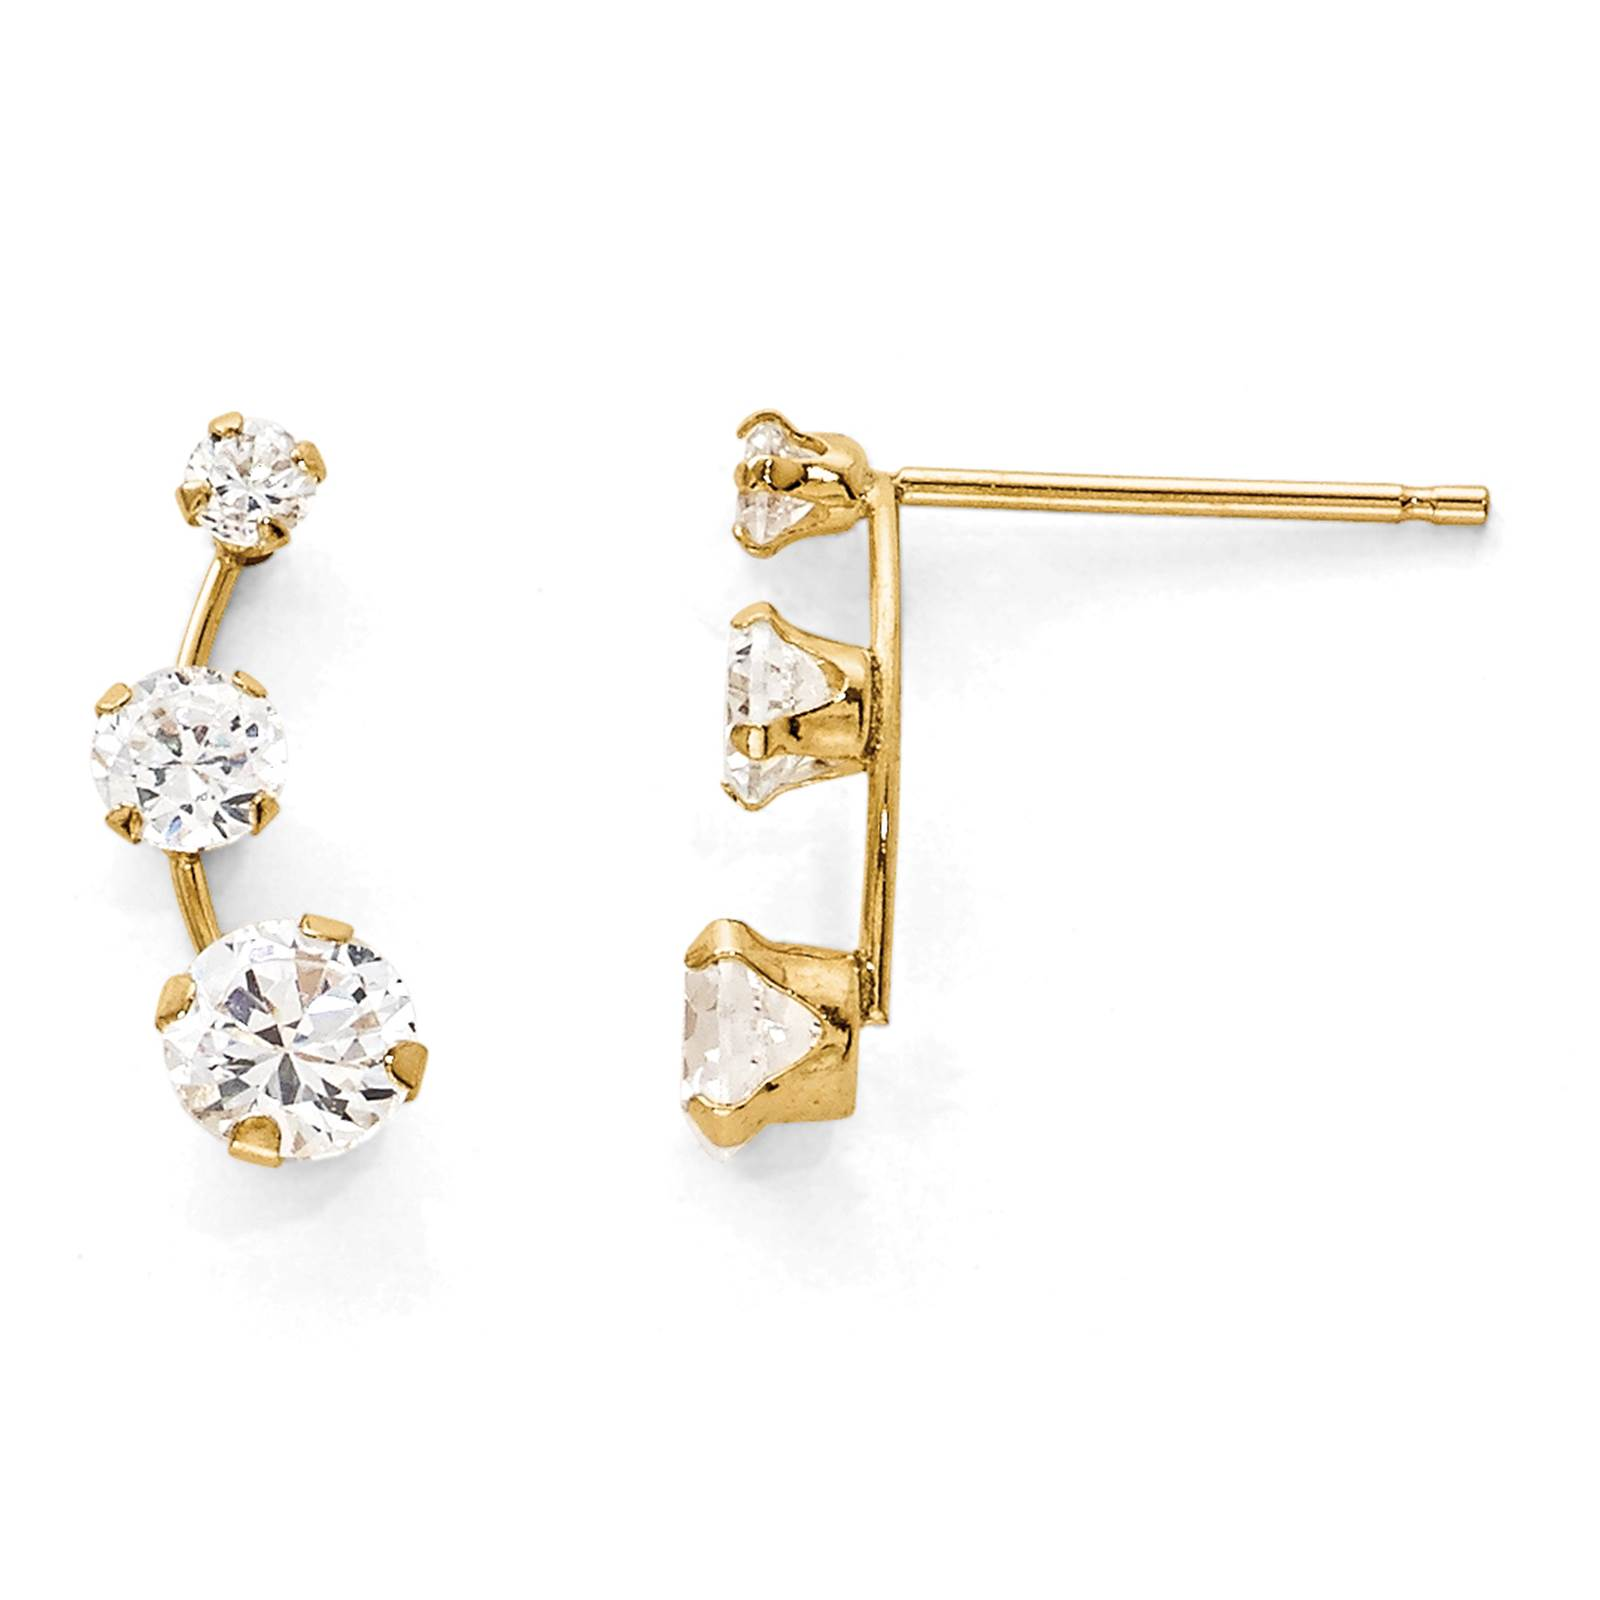 Madi K Kids 14k Yellow Gold Polished Curved 3 Stone CZ Post Earrings